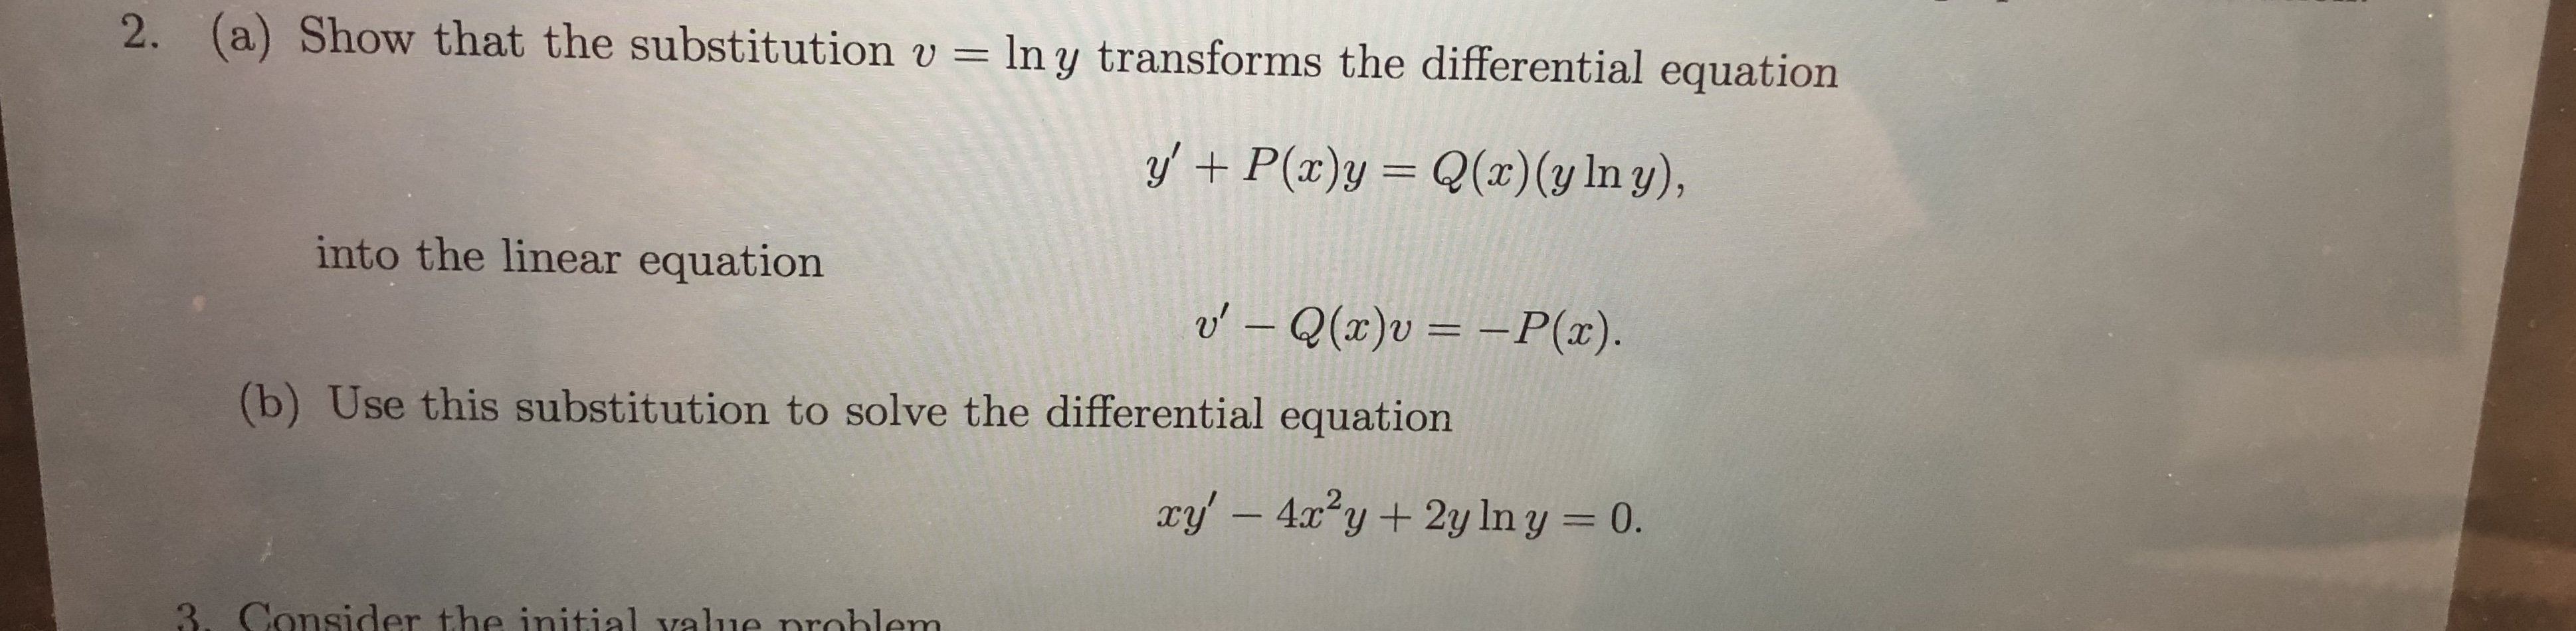 2. (a) Show that the substitution v ln y transforms the differential equation Q(x) (y In y), yP(x)y into the linear equation o'- Q(x)v = -P(x) (b) Use this substitution to solve the differential equation ry' -4xy2y In y = 0. 3. Consider the initial value nroblem